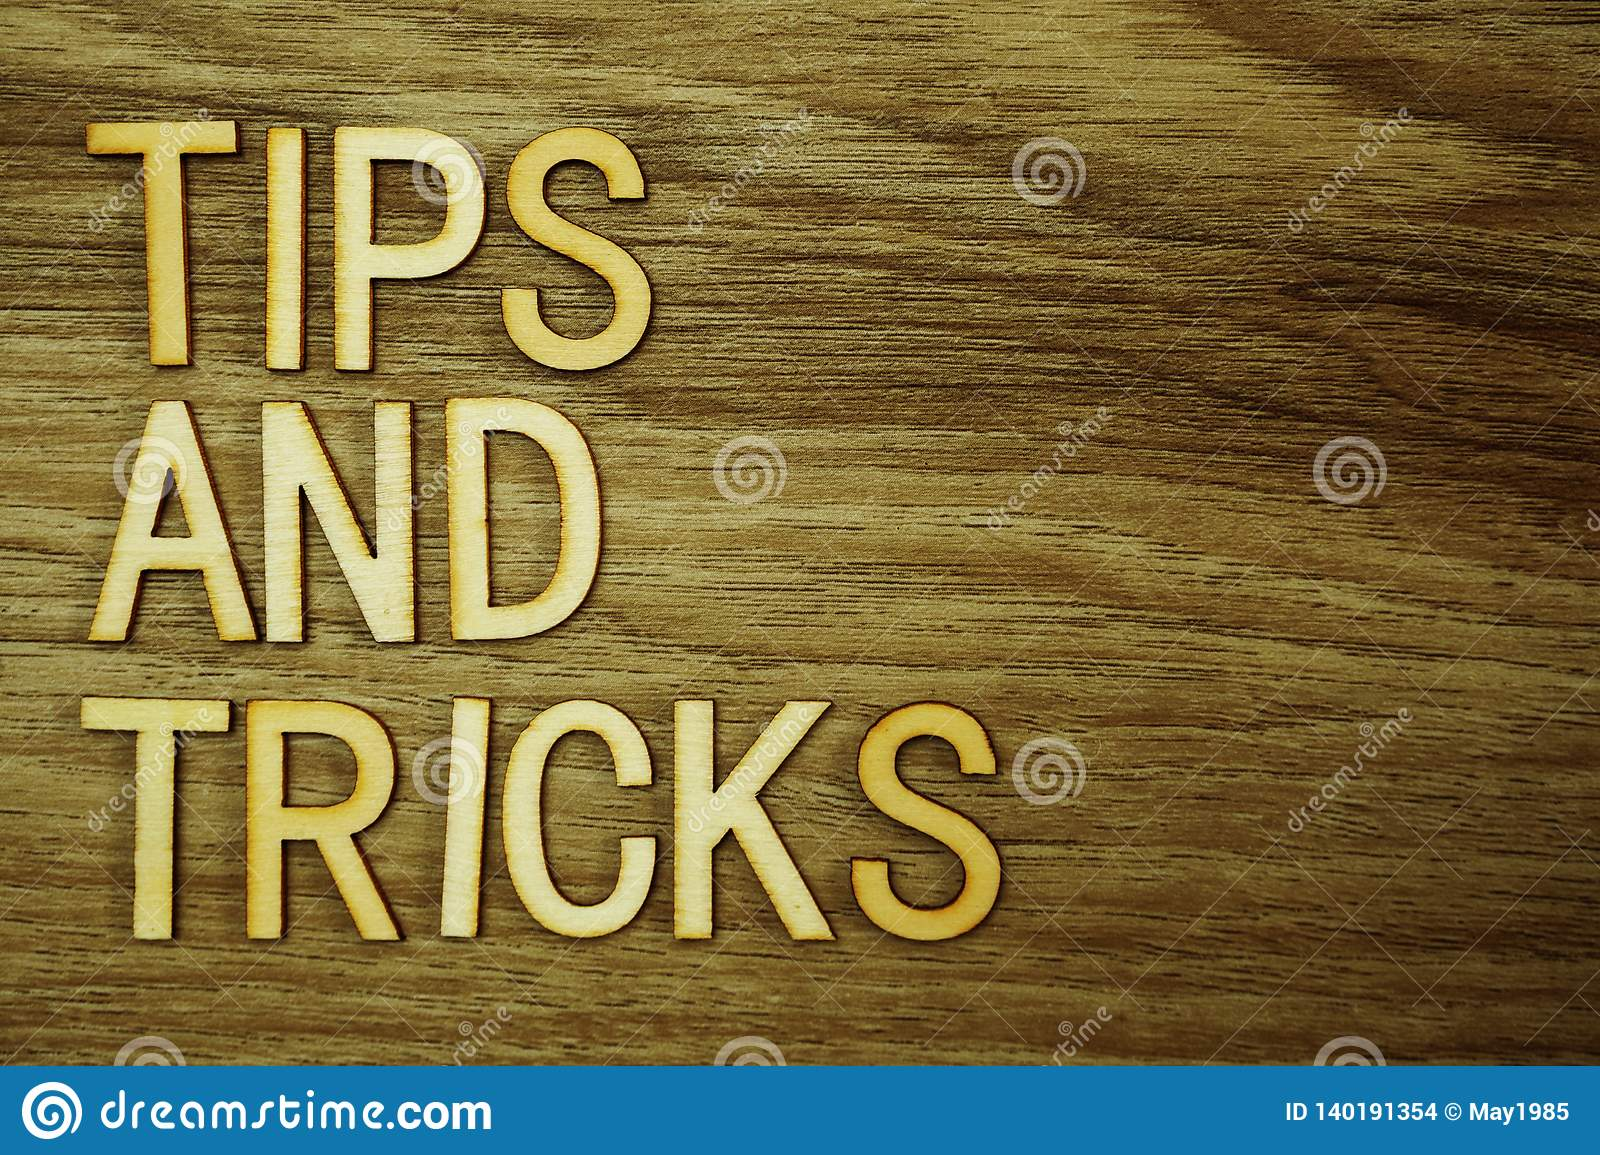 Tips and Tricks text message on wooden background